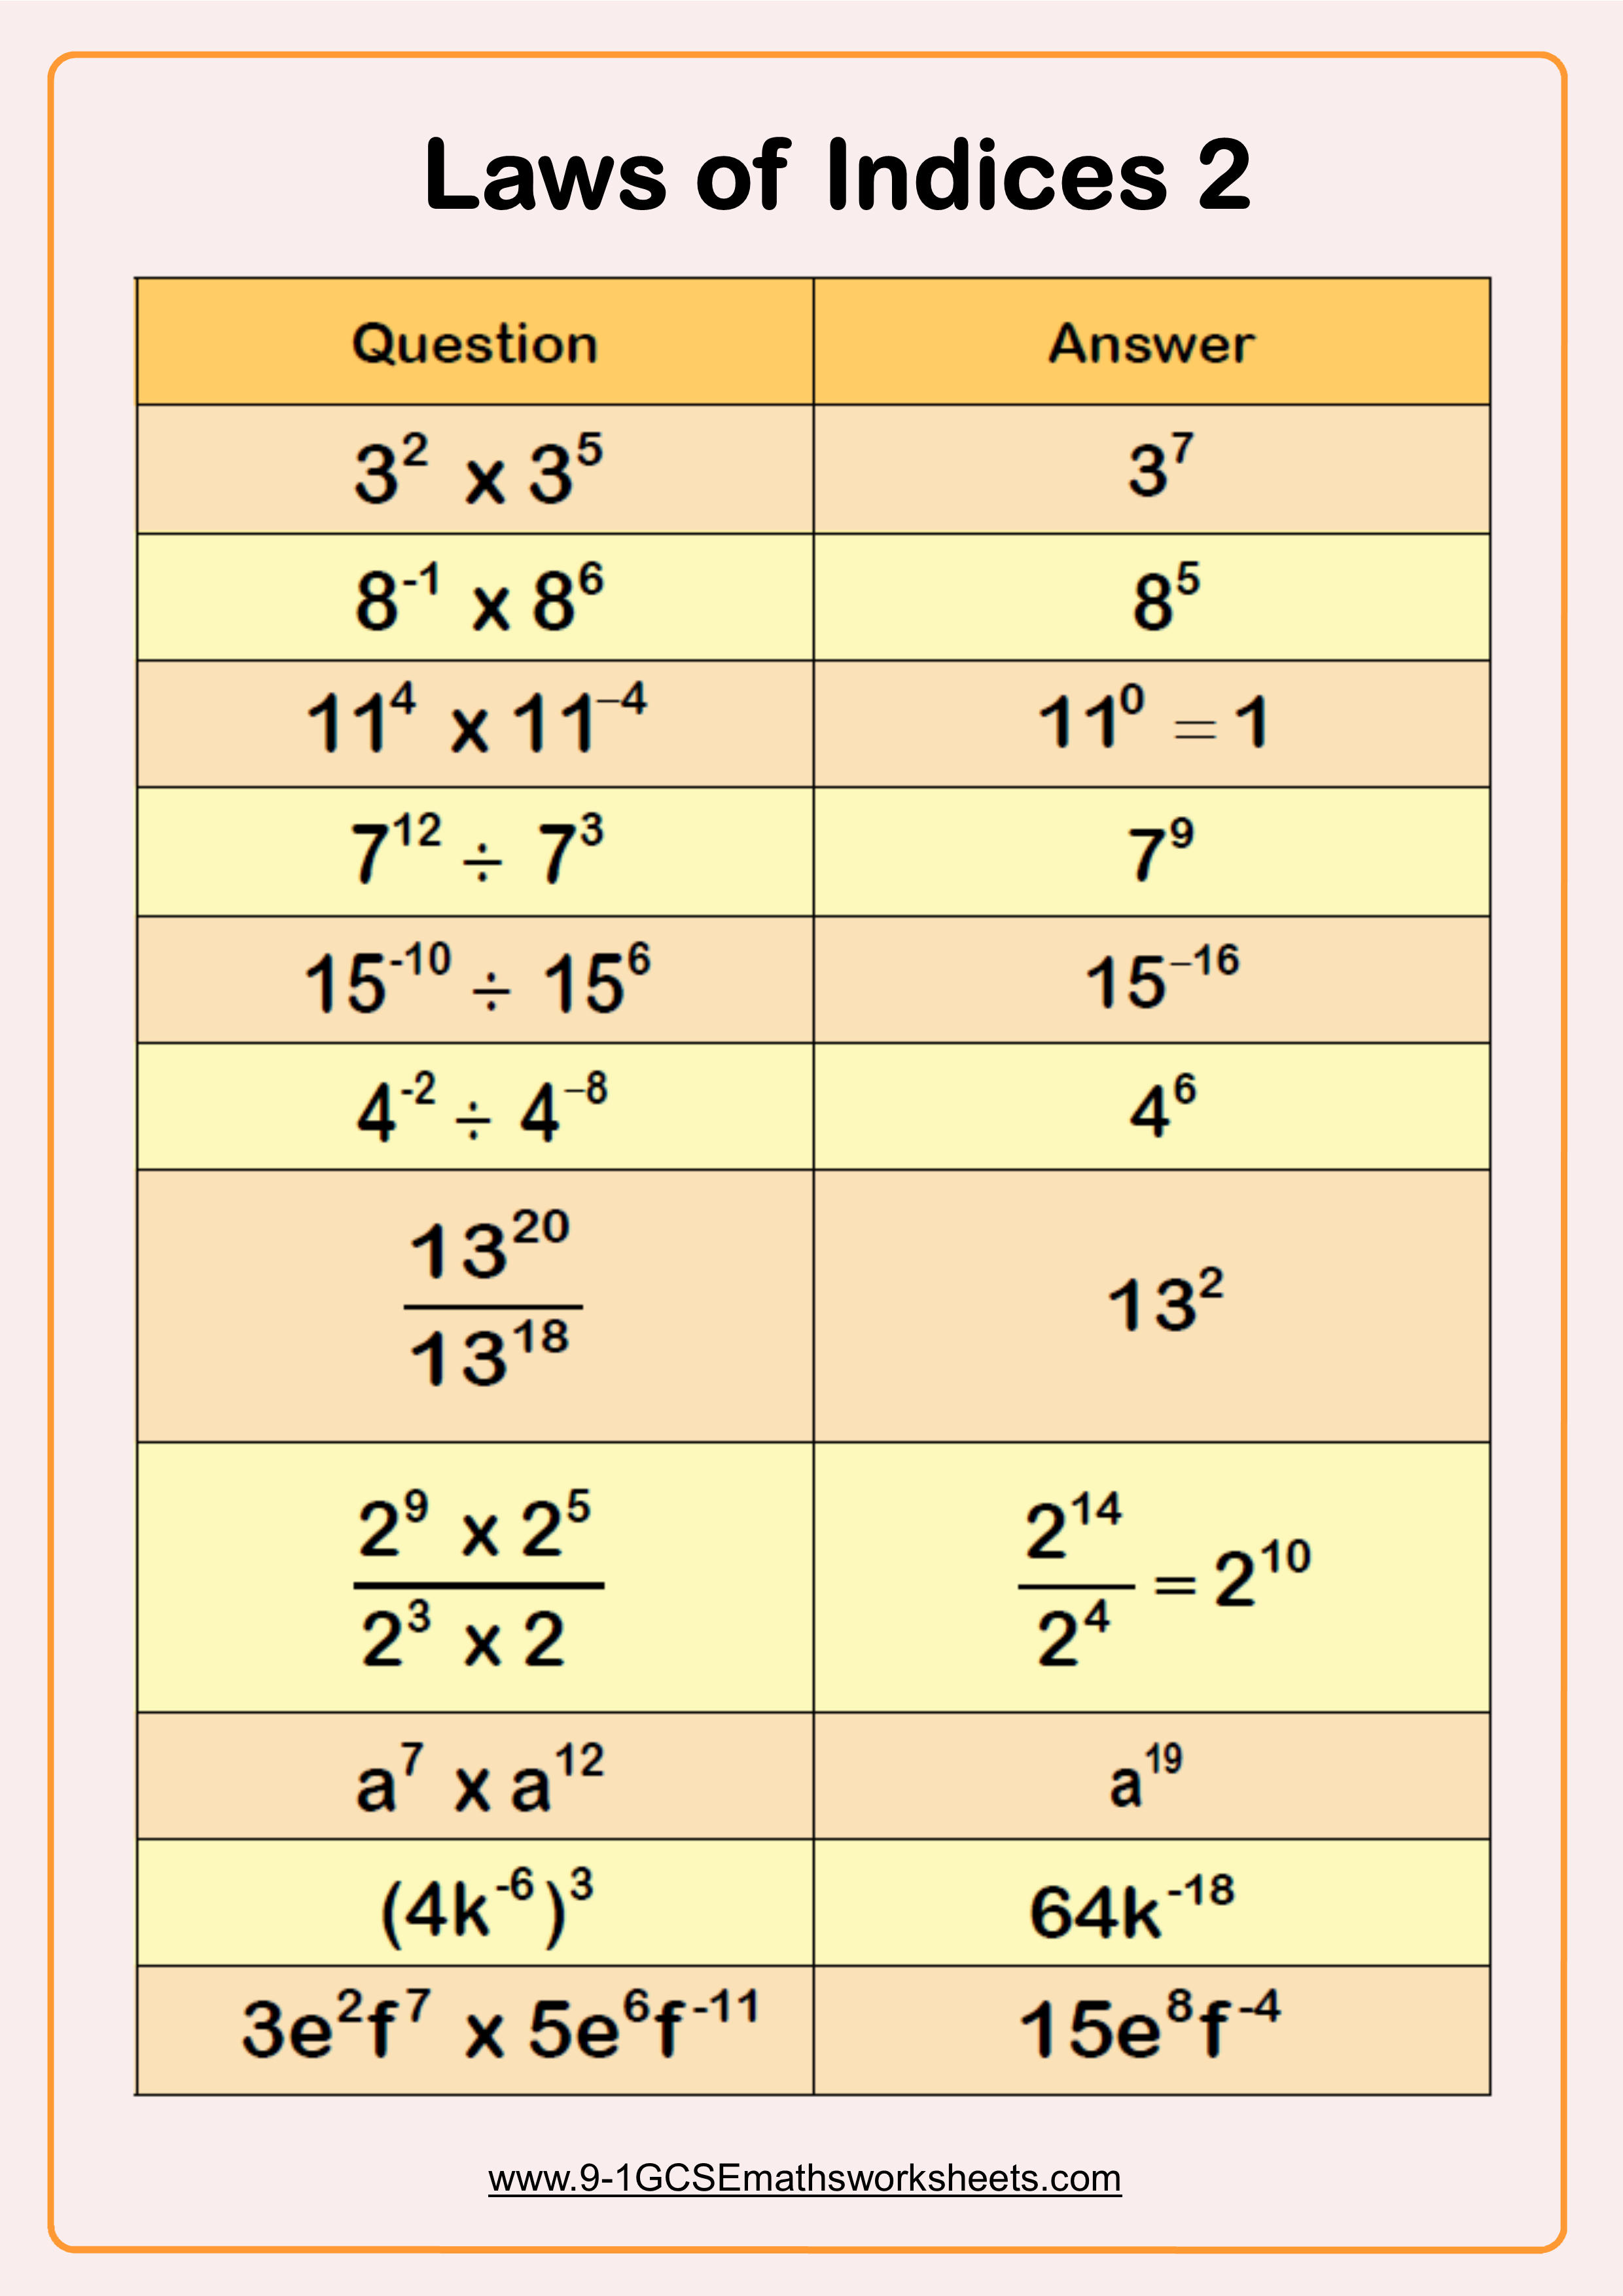 Laws of indices 2